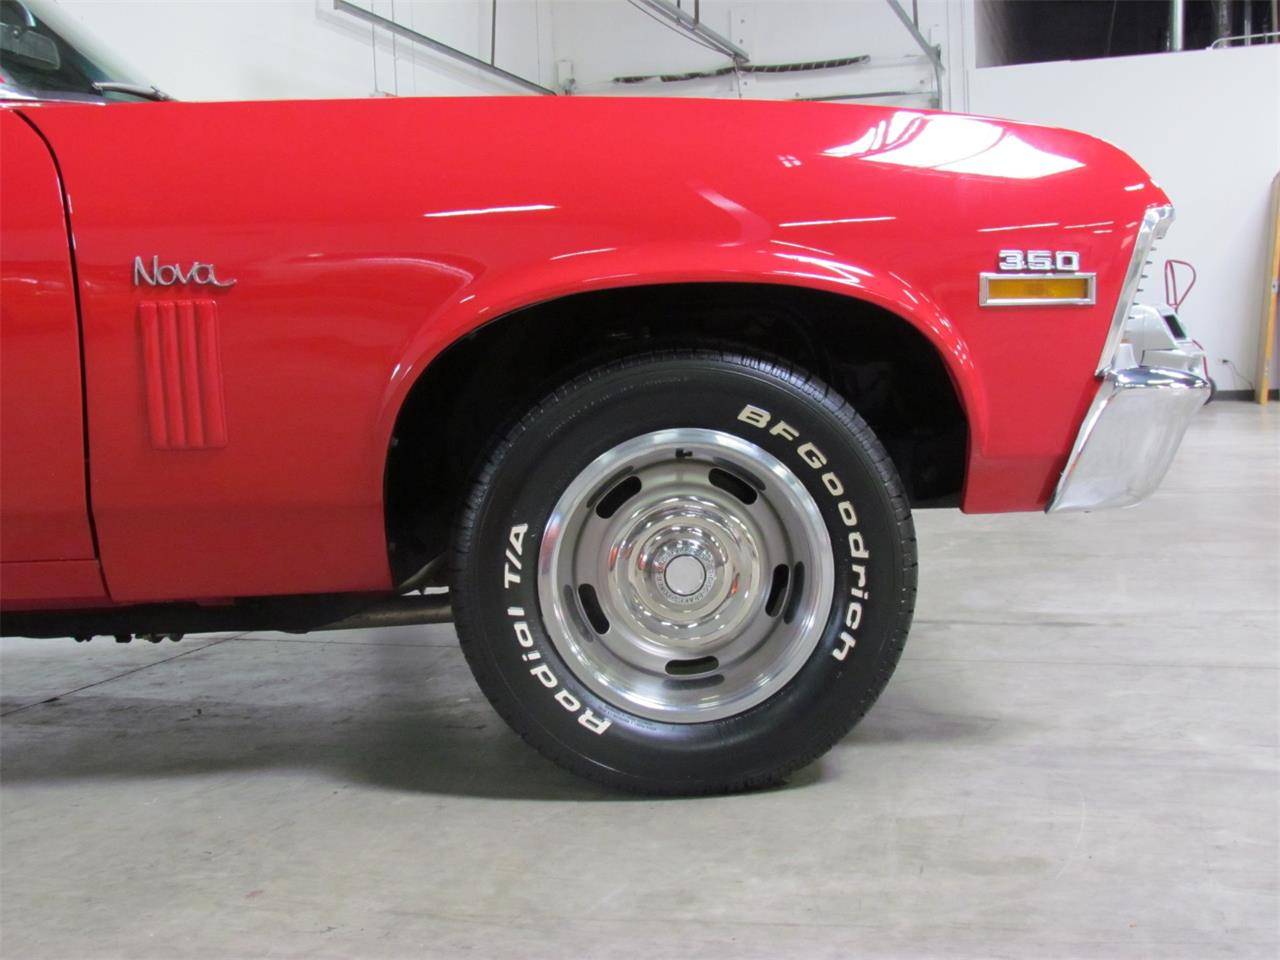 Large Picture of Classic 1970 Nova located in Illinois Offered by Black Hawk Motors - Q1DC